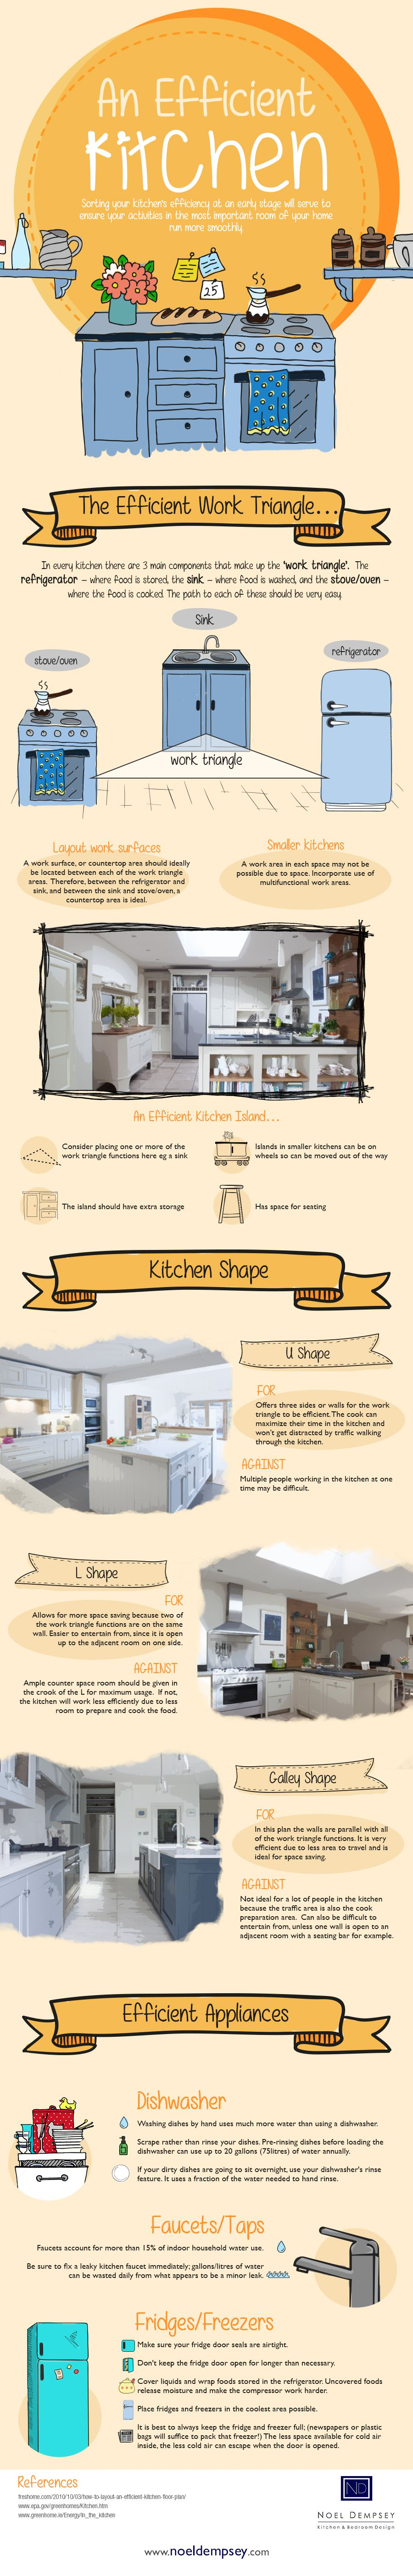 an-efficient-kitchen-infographic